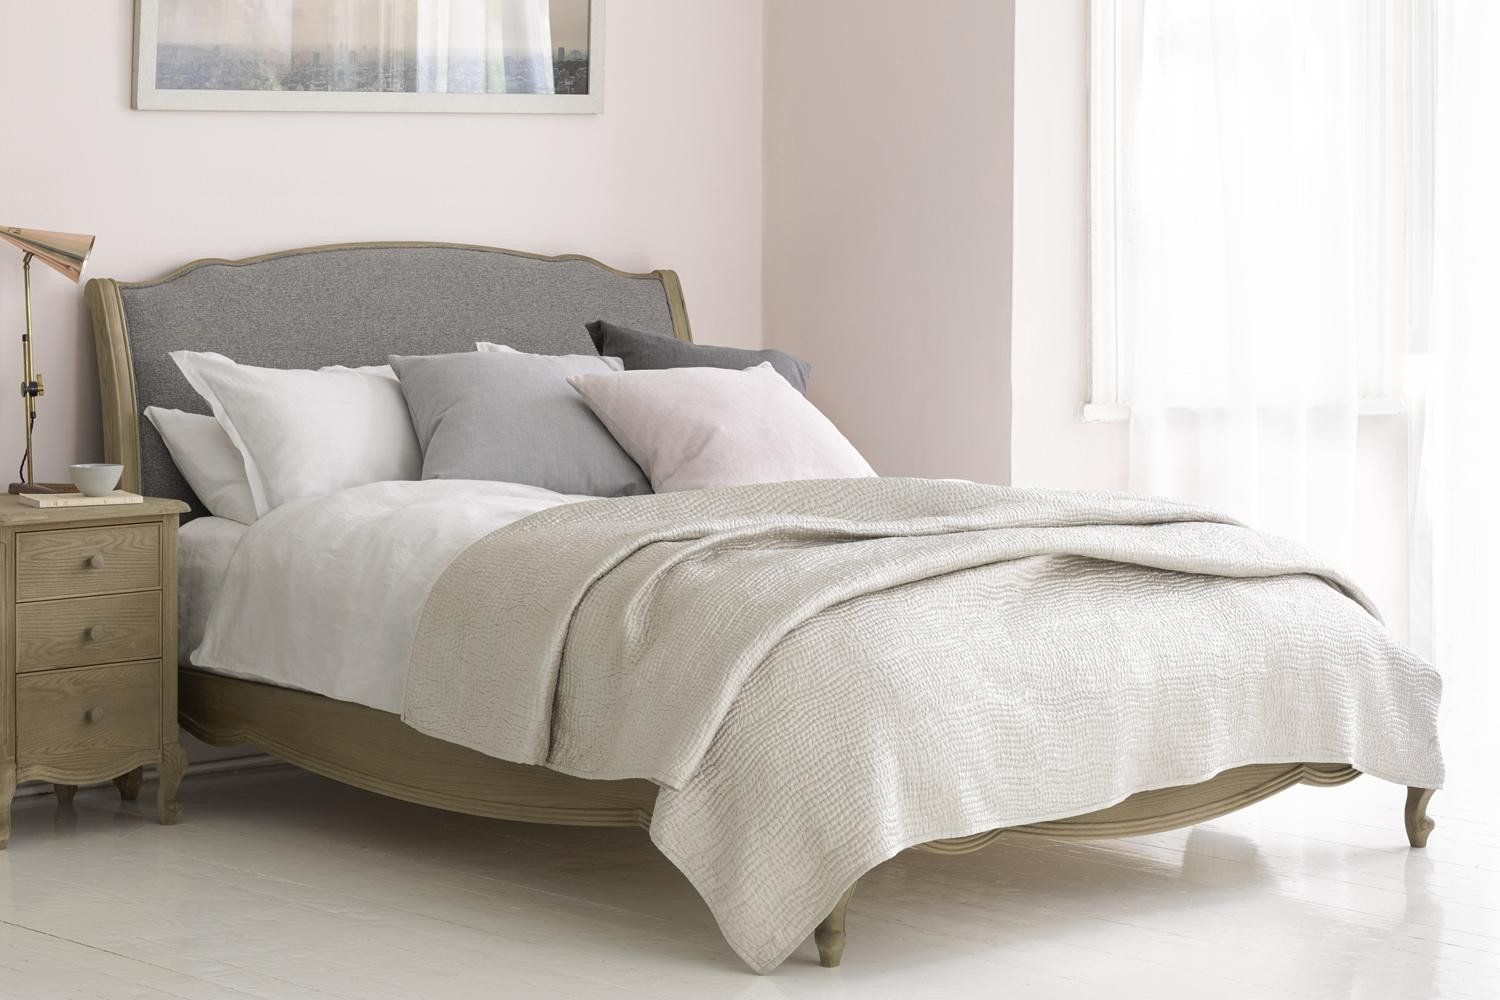 Best King Size Bed Frame New Best Beds the Most Beautiful